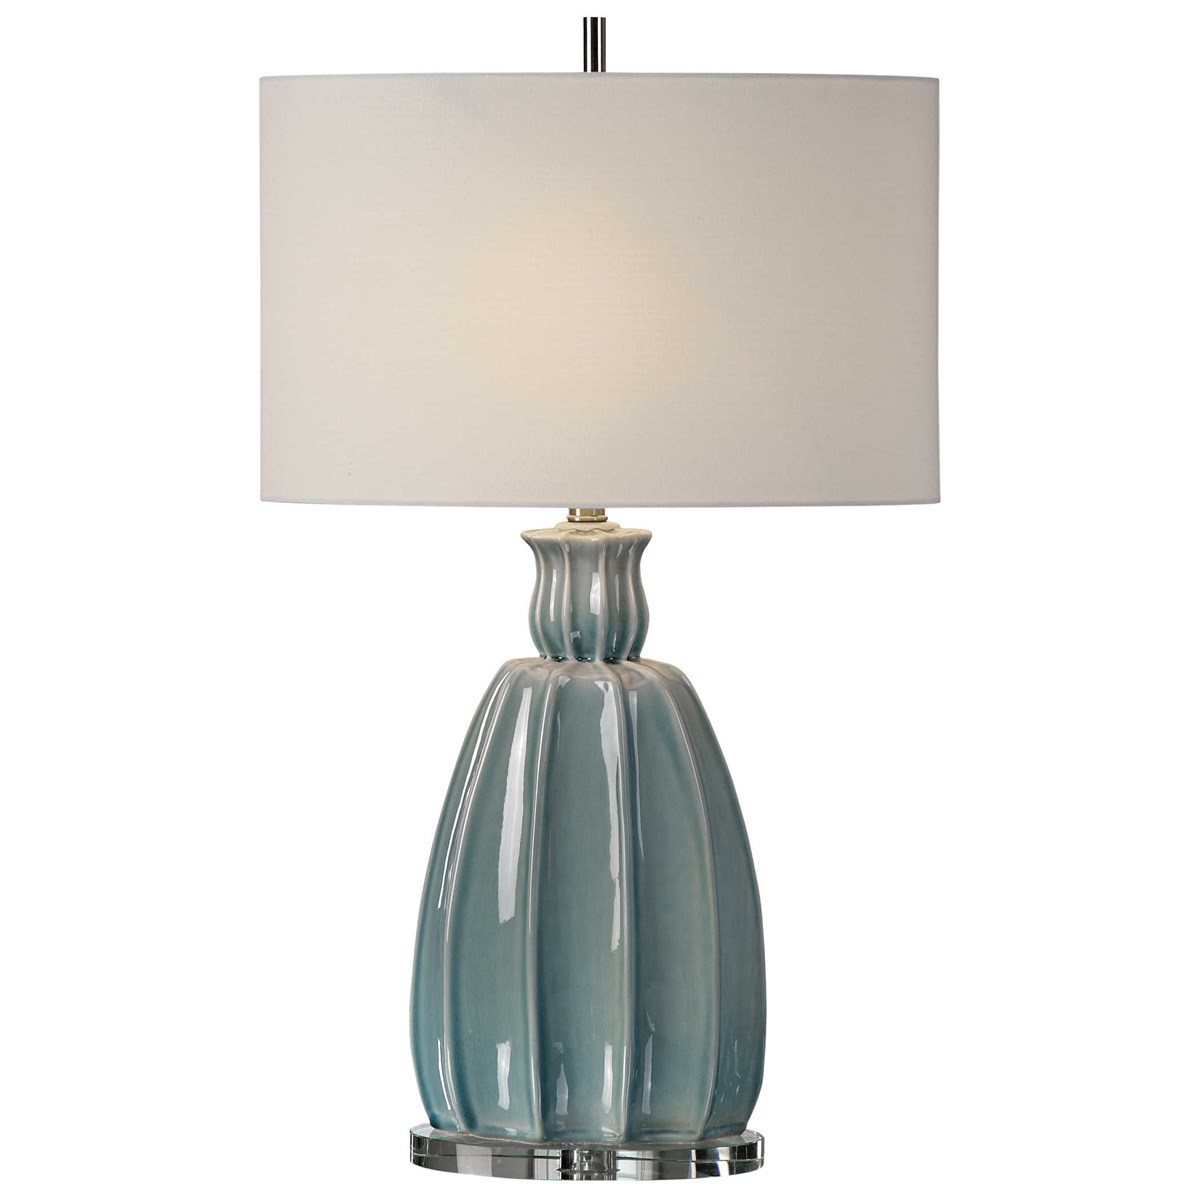 Uttermost Accessories Cayson Ribbed Ceramic Bottles S 2: Uttermost Suzanette Sky Blue Ceramic Lamp